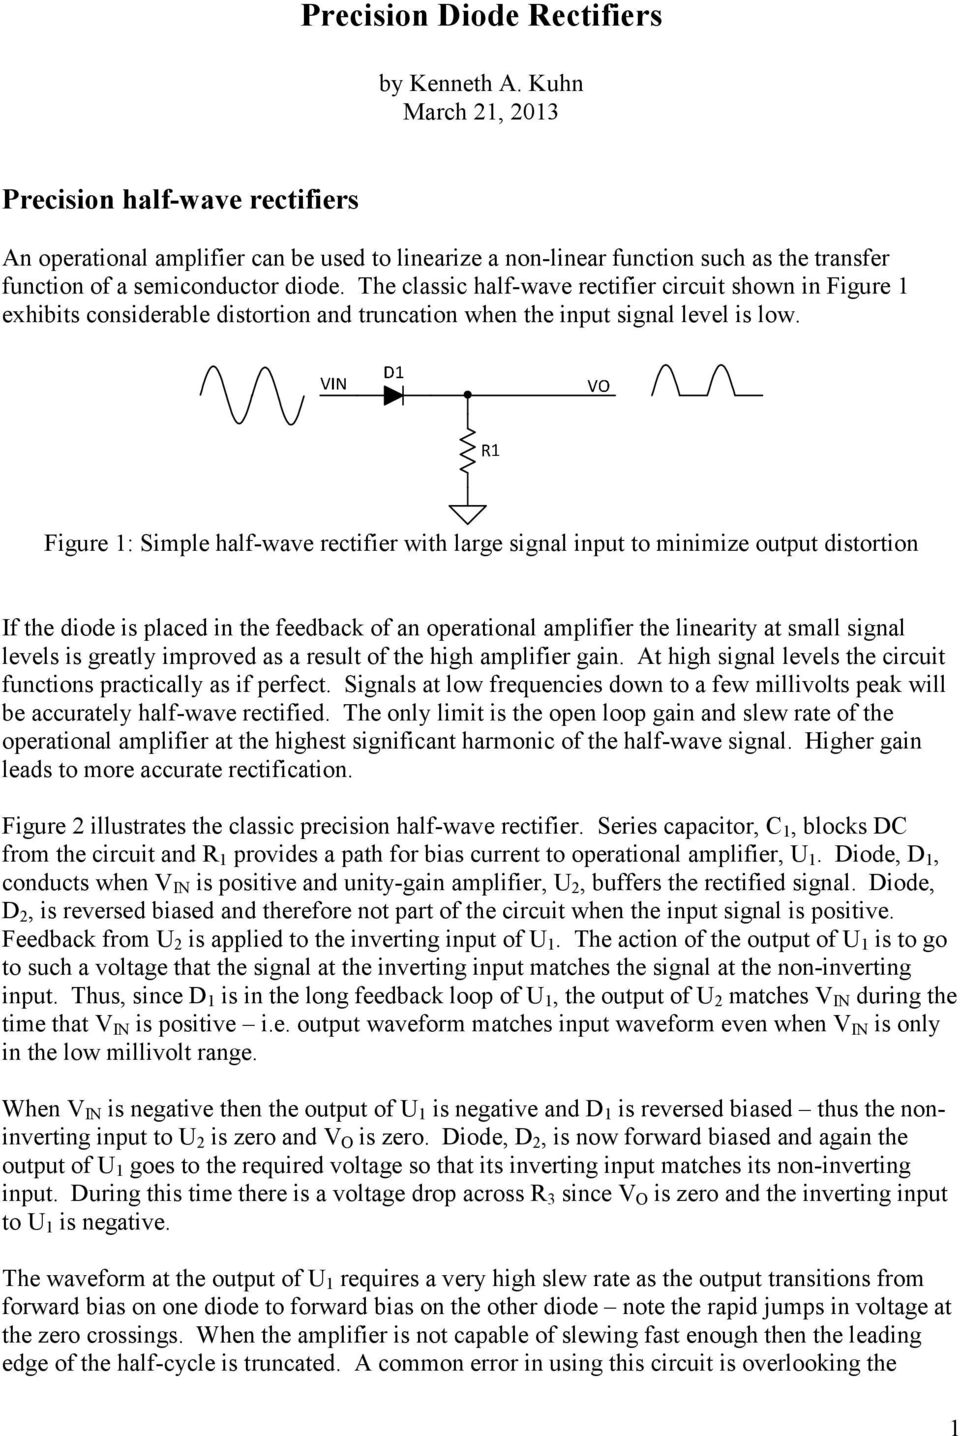 Precision Diode Rectifiers Pdf Halfwave Rectifier Topology The Circuit Is A Figure 1 Simple Half Wave With Large Signal Input To Minimize Output Distortion